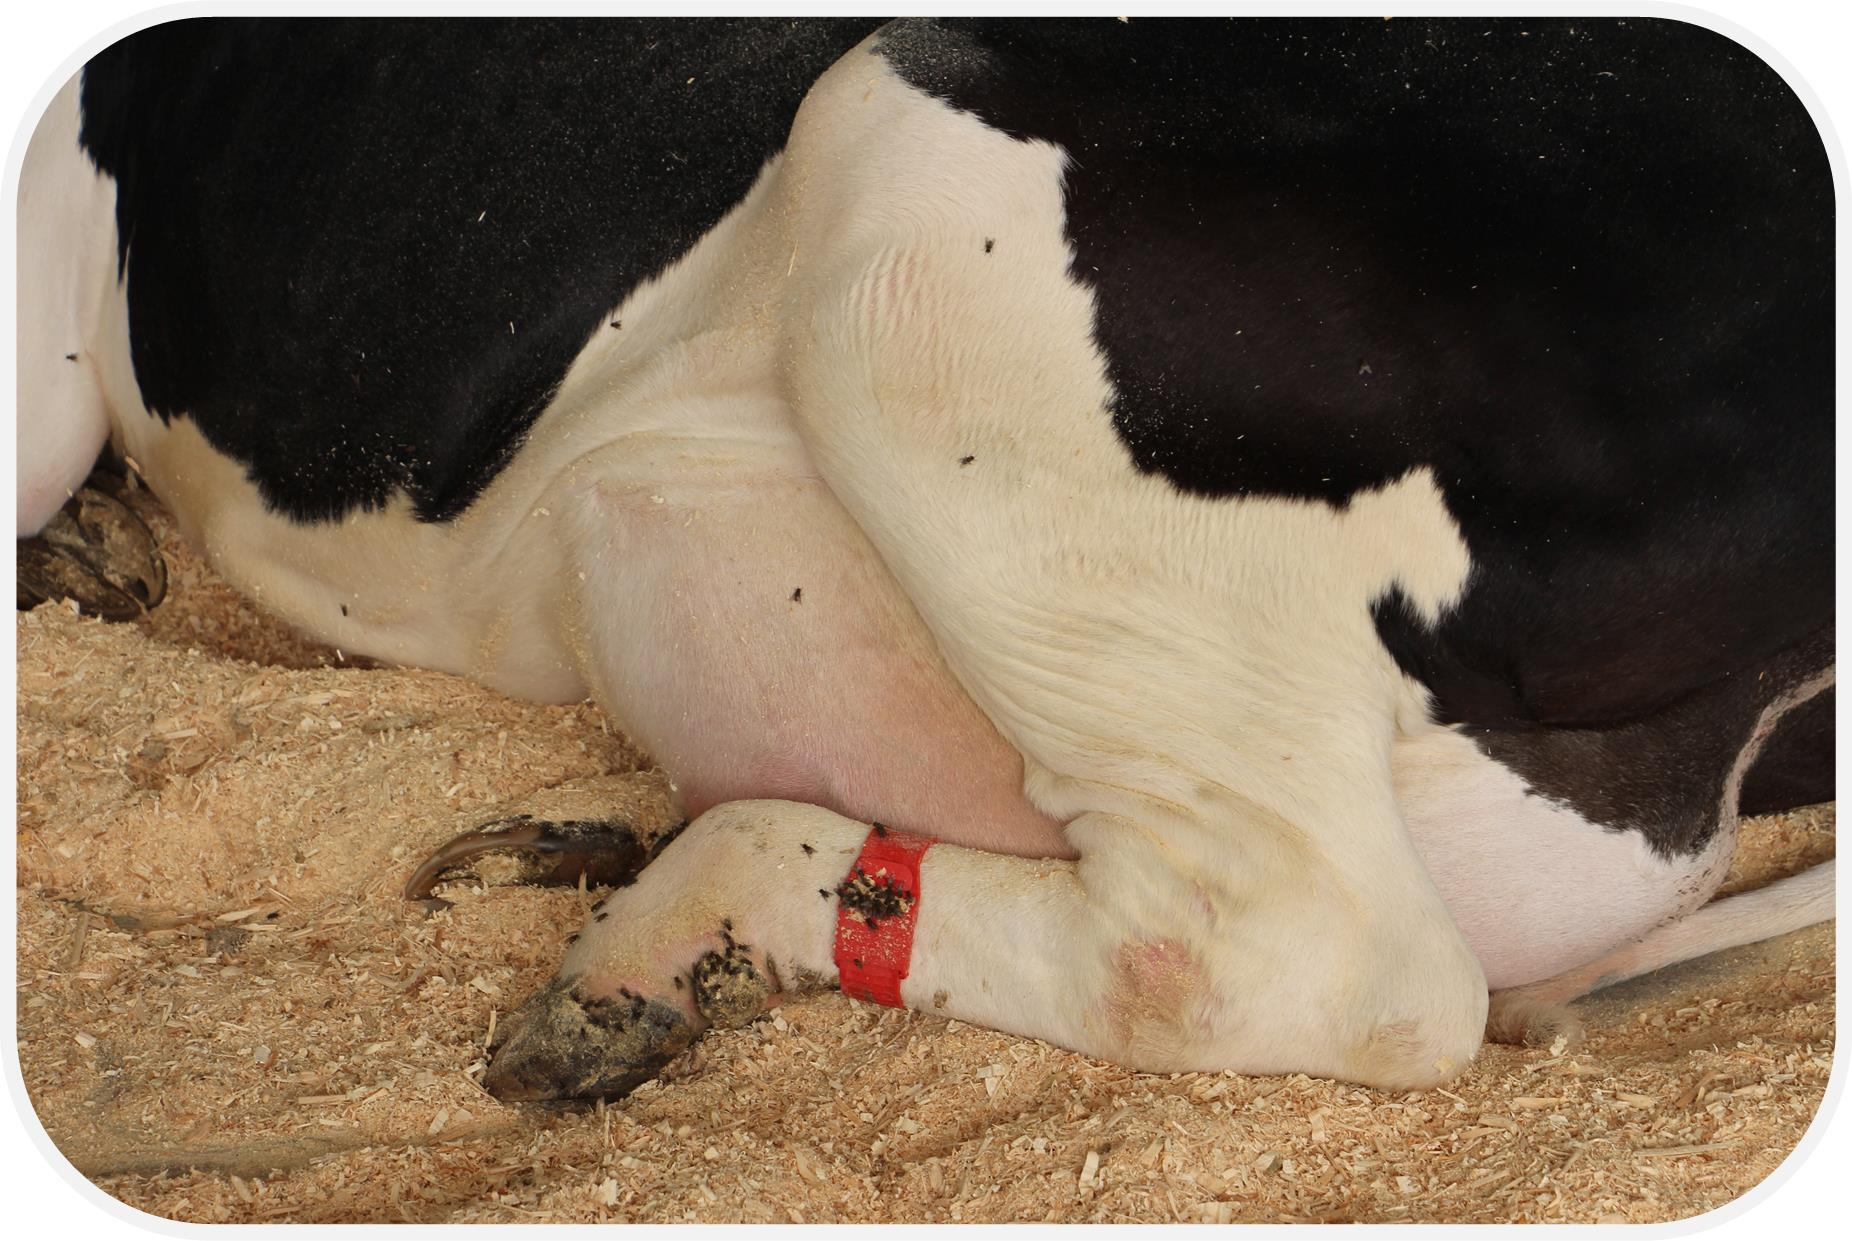 dairy cow with red band on back leg